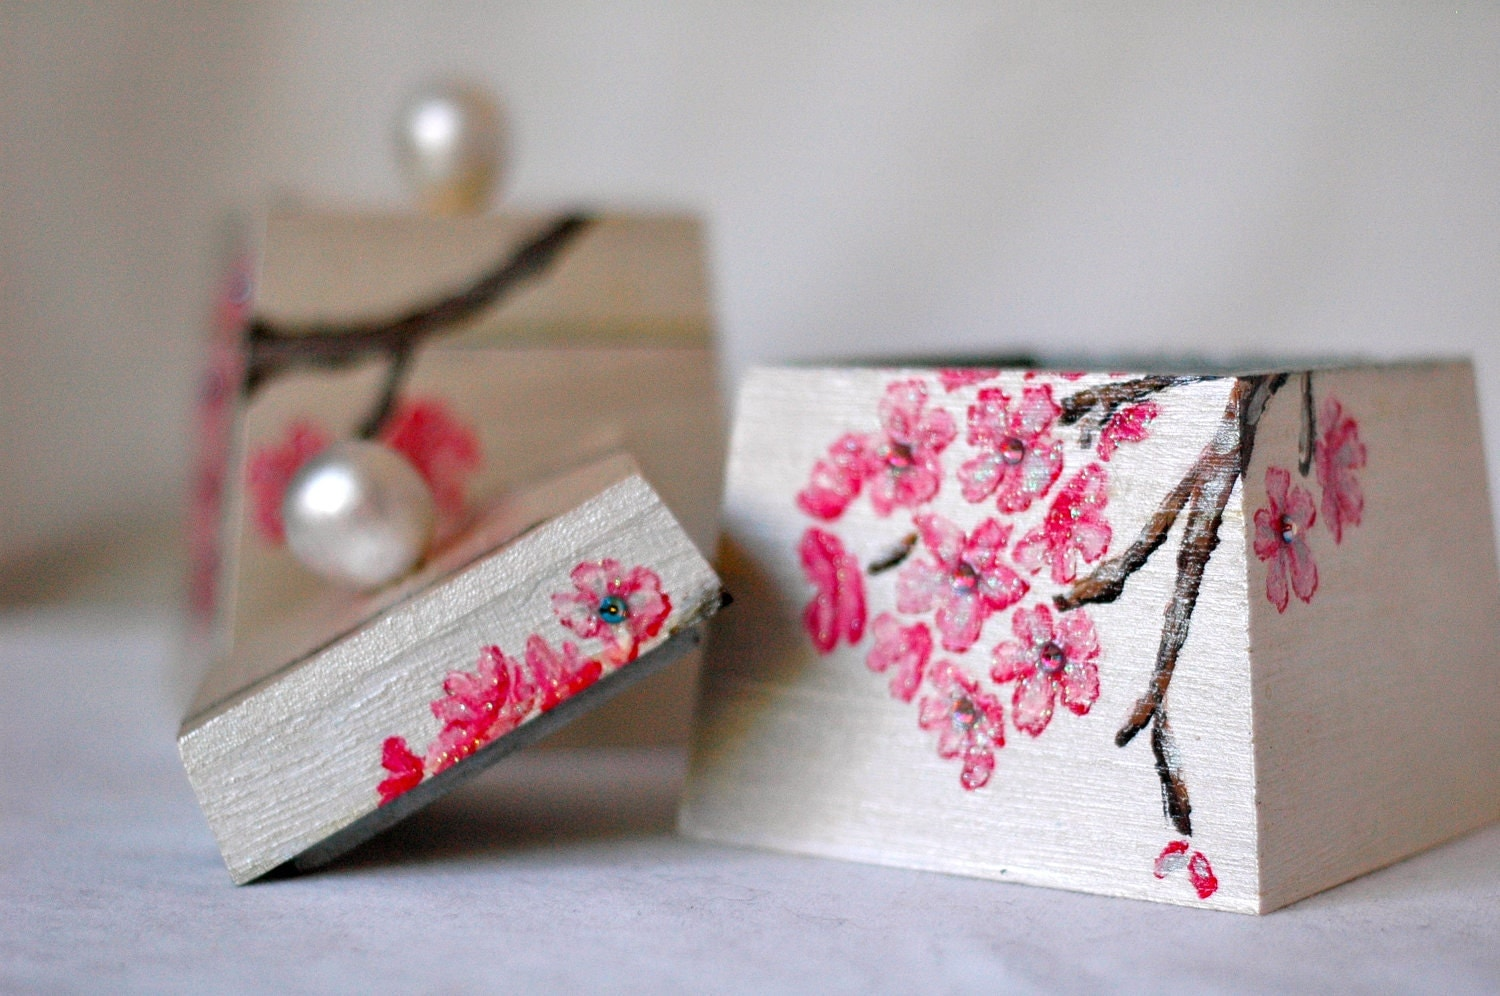 Set of 2, Handpainted Decorative Boxes with Cherry Blossoms, Butterflies, and Gems